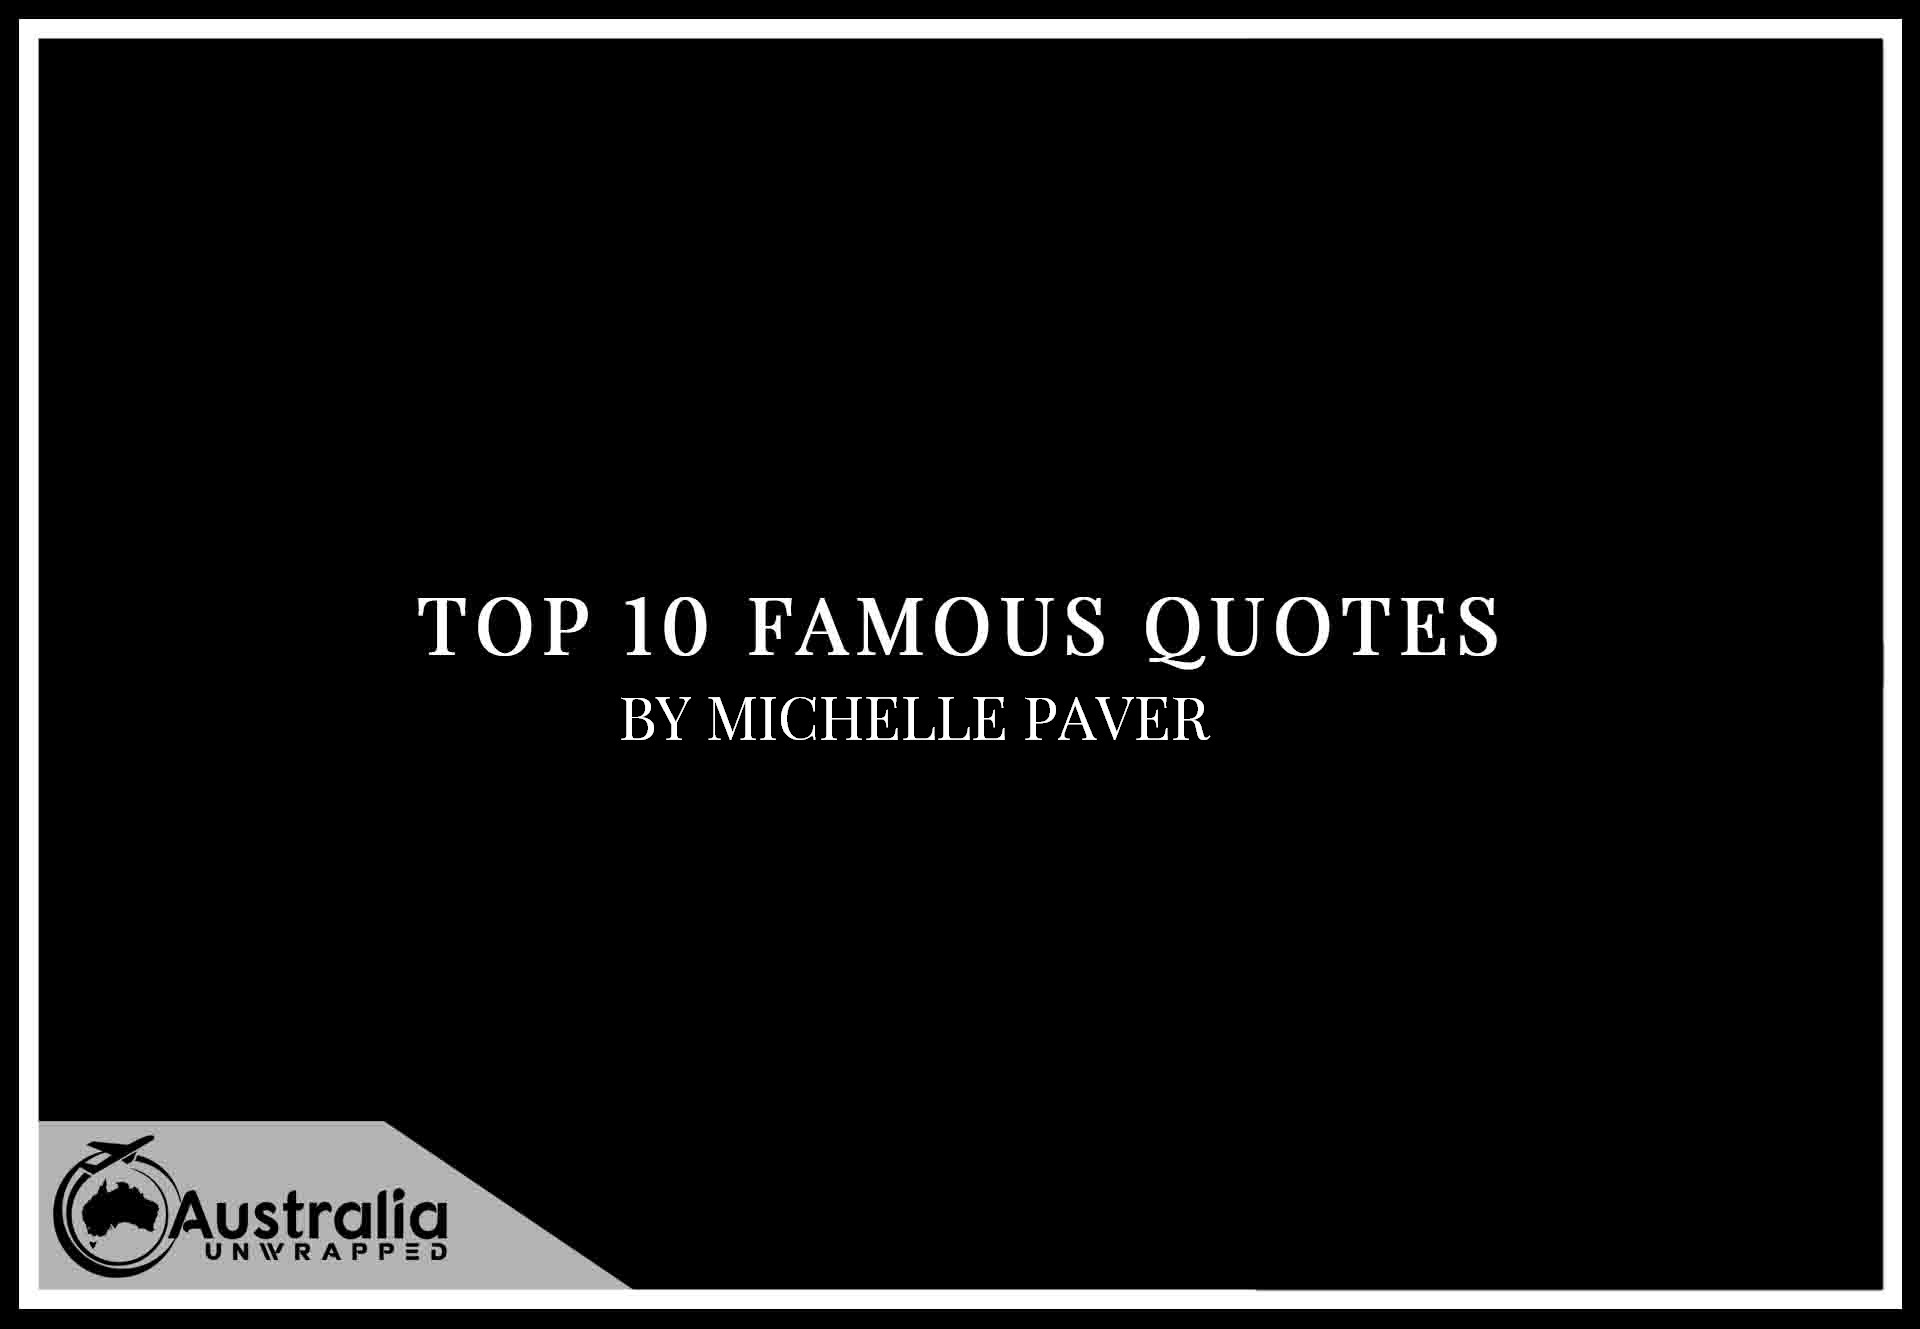 Top 10 Famous Quotes by Author Michelle Paver